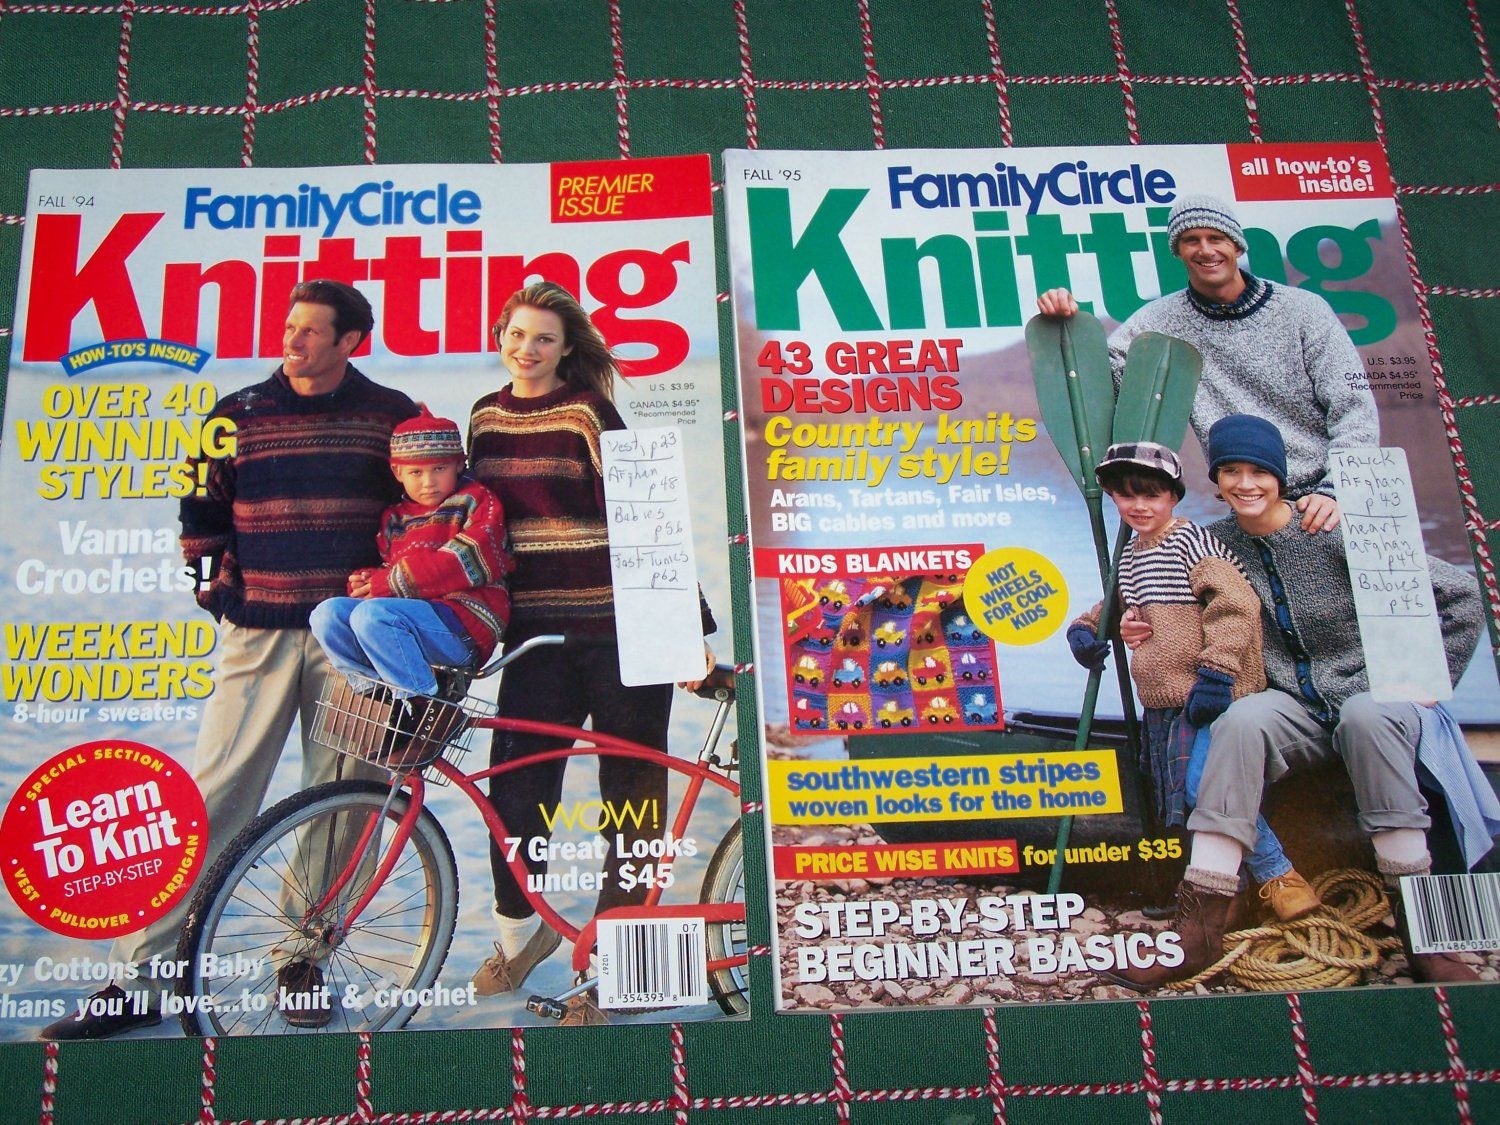 Lot of 2 Family Circle Knitting Back Issue Magazines Fall 83 Patterns 1994 1995